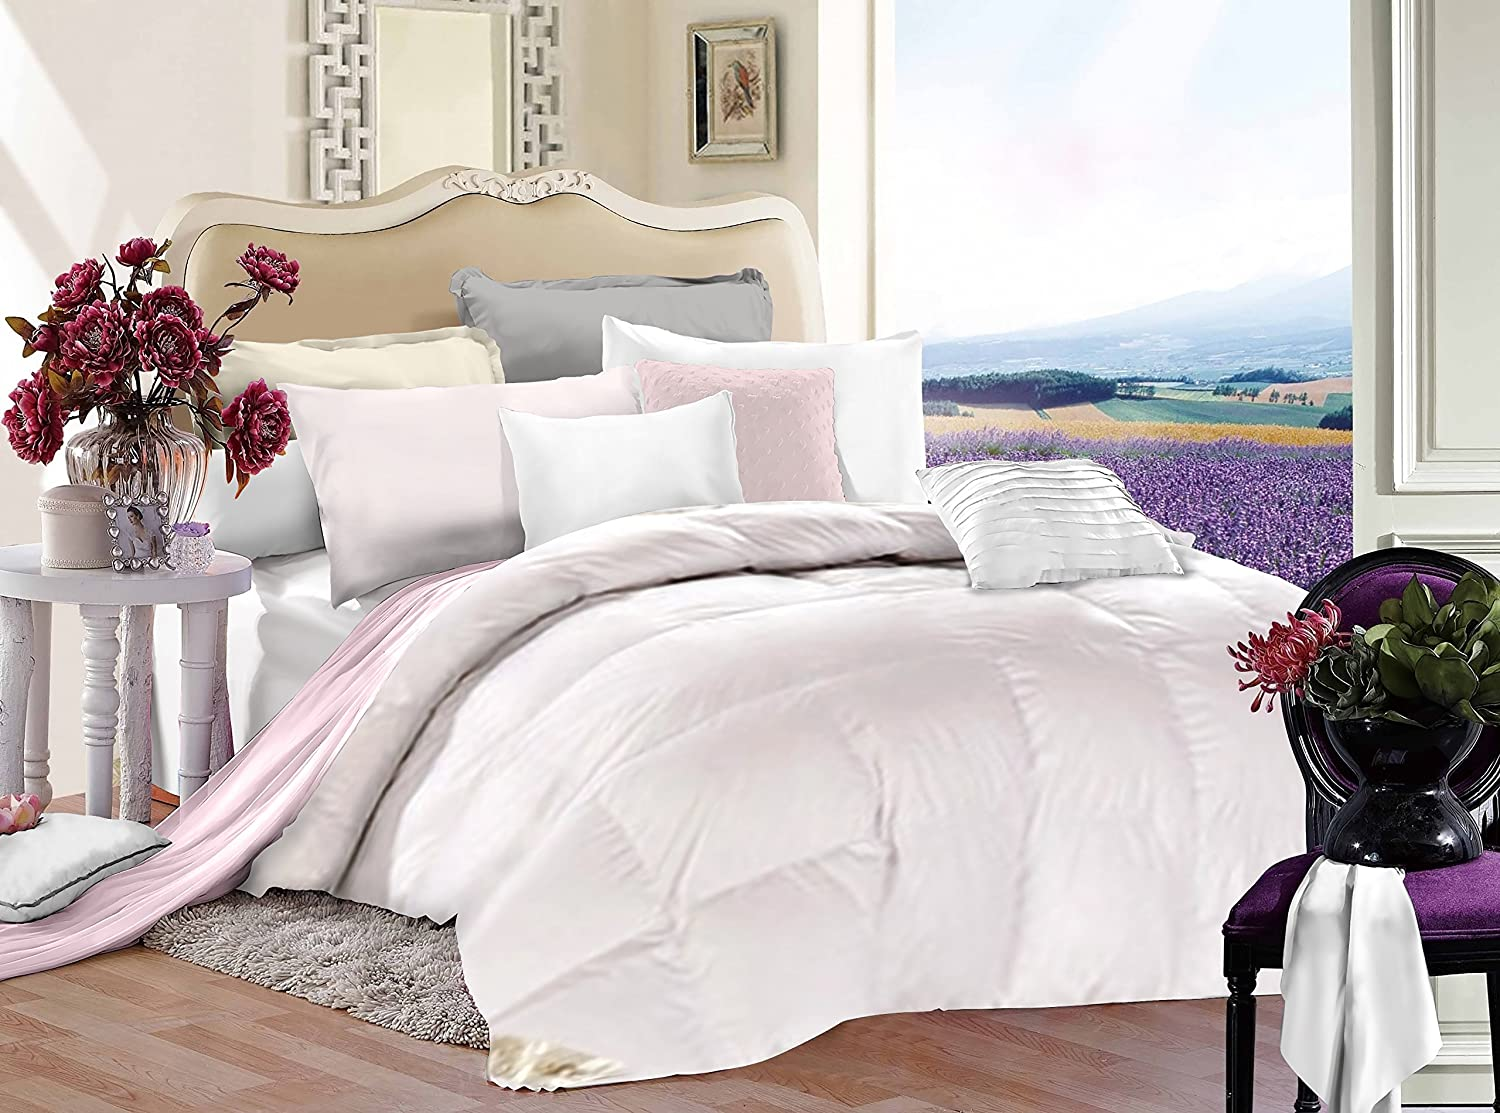 xl of twin comforter image design comforters ideas home decor creation down popular duvet hq duvets and